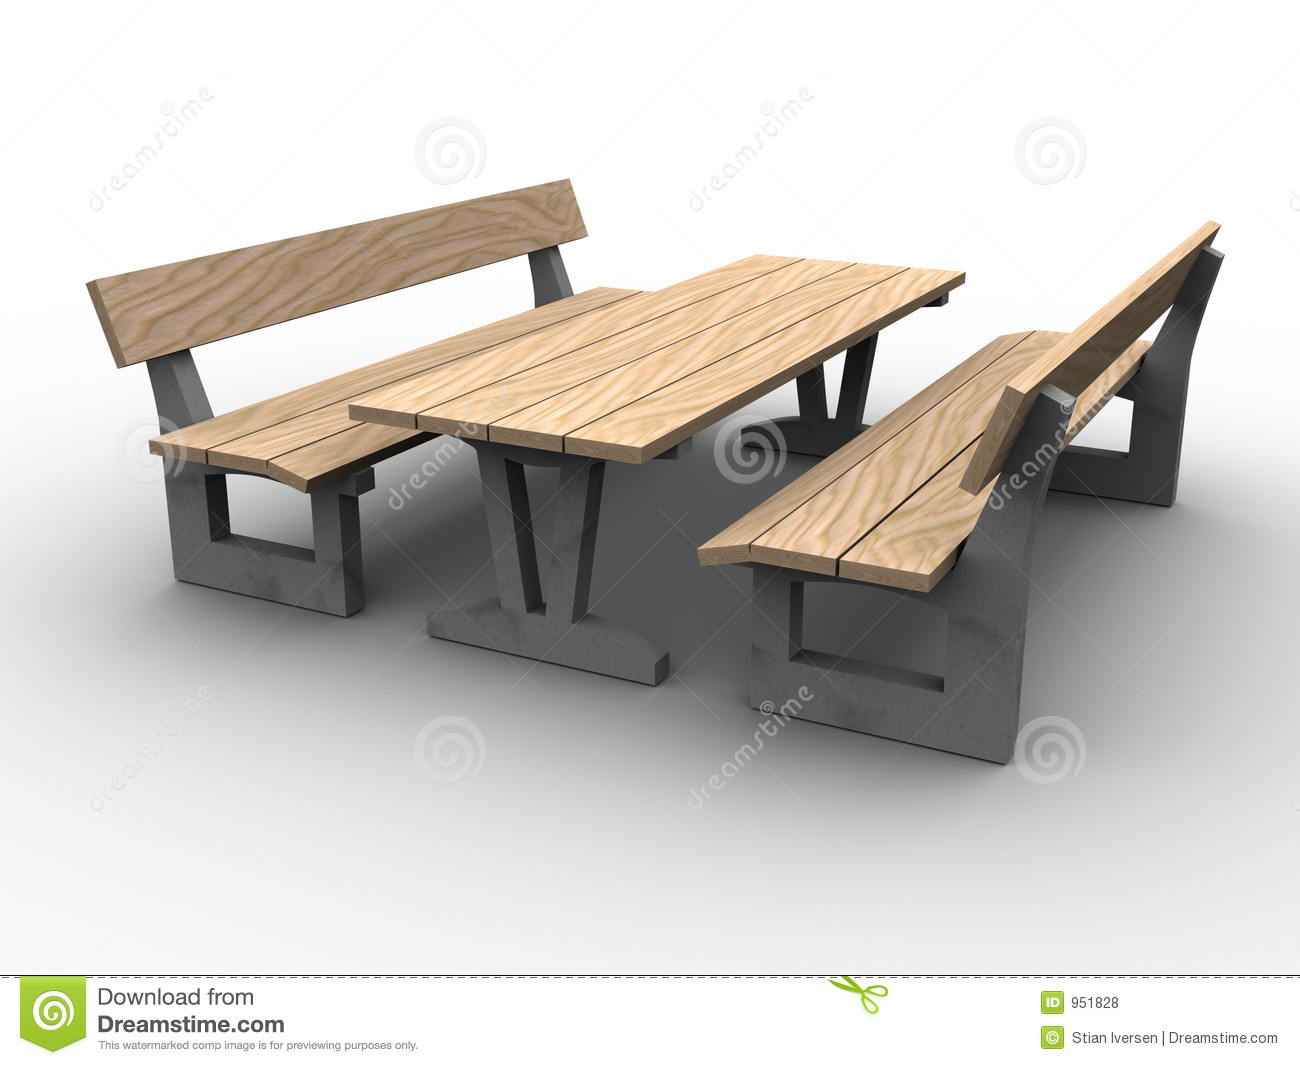 royalty free stock photo download 3d garden furniture - Garden Furniture 3d